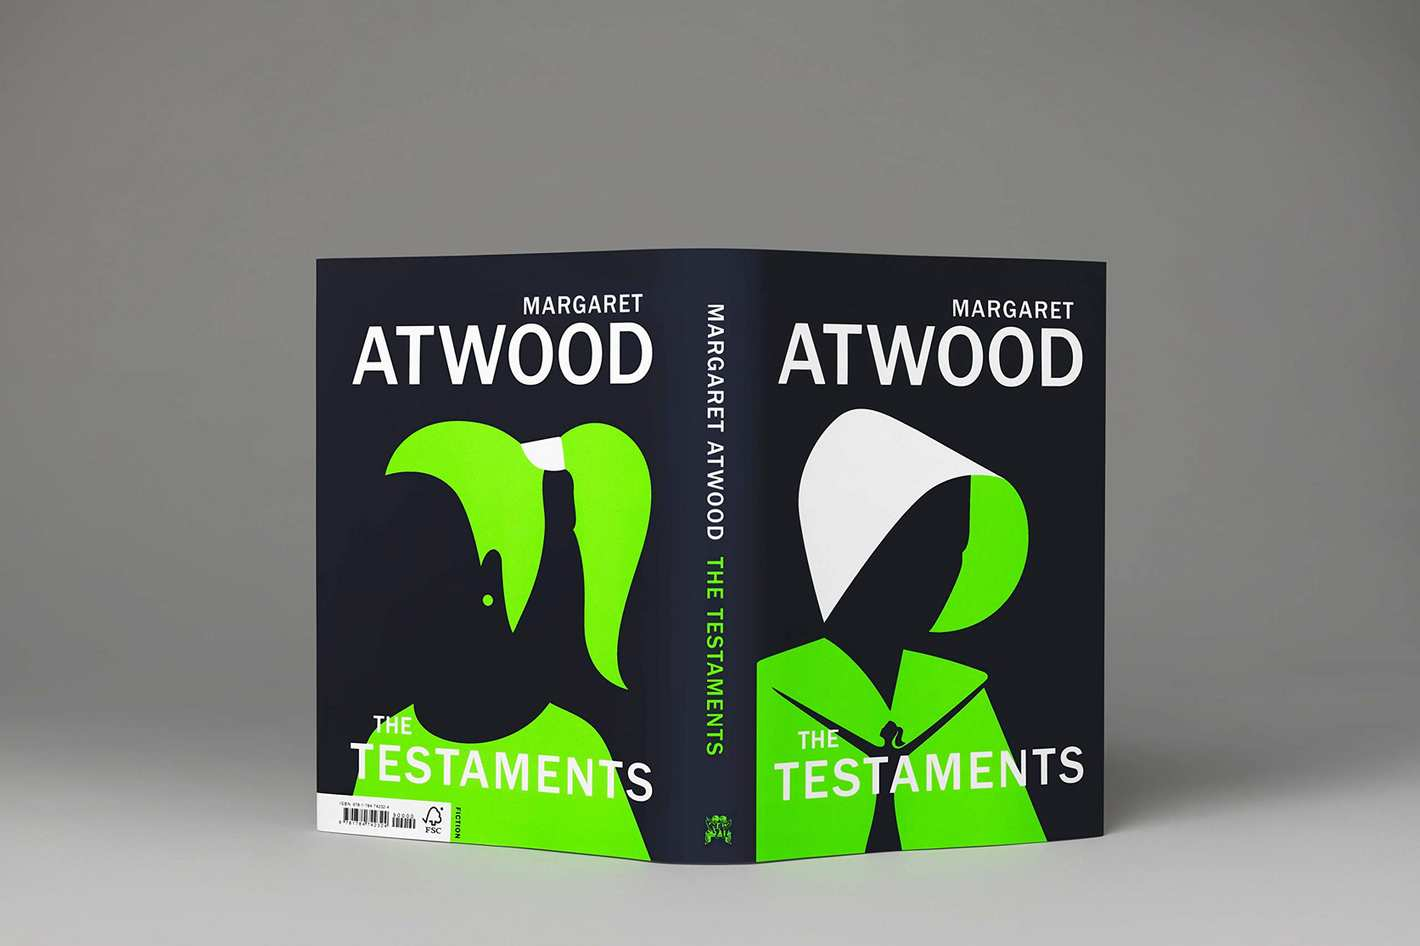 'The Testaments' by Margaret Atwood